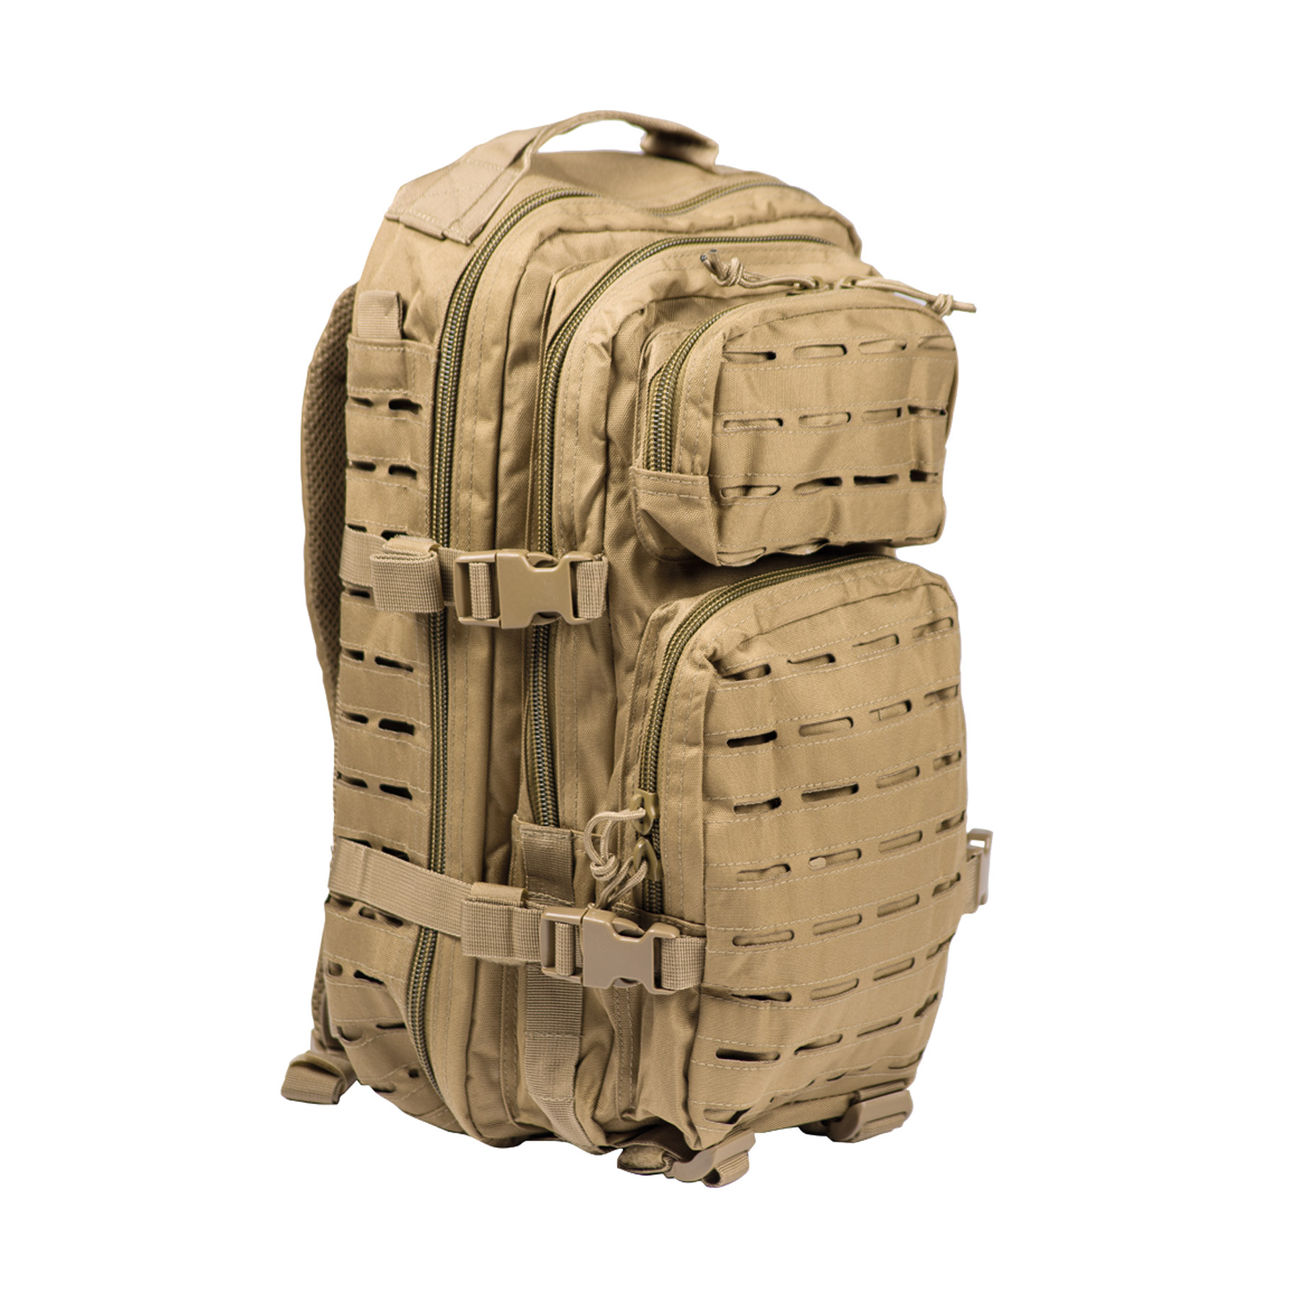 Mil-Tec Rucksack US Assault Pack Laser Cut small 20L coyote 0